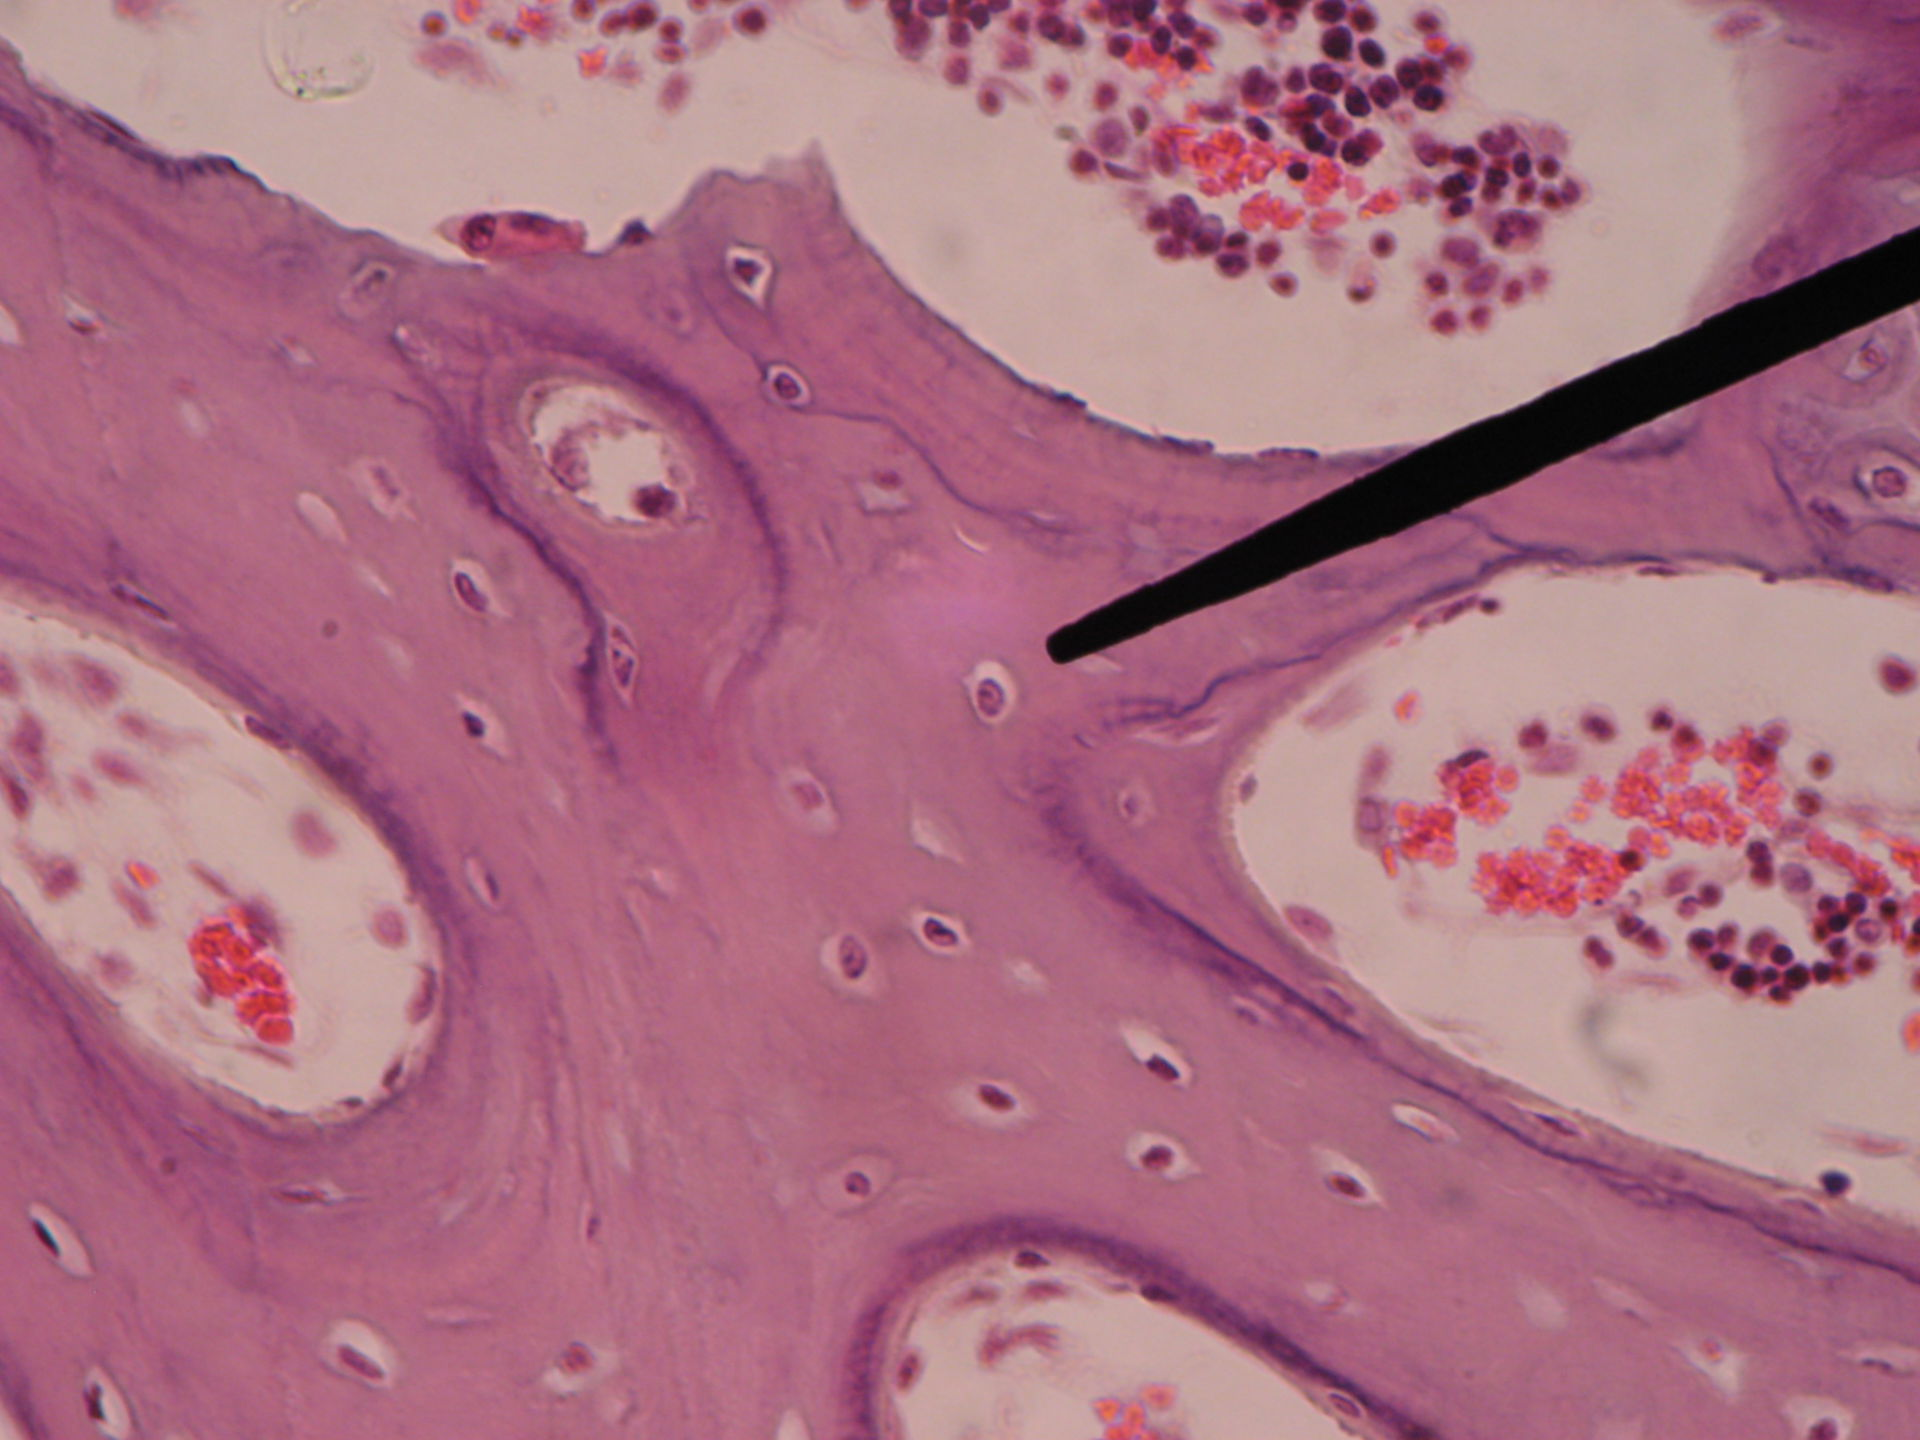 Red bone marrow of a pig fetus-active osteoblasts